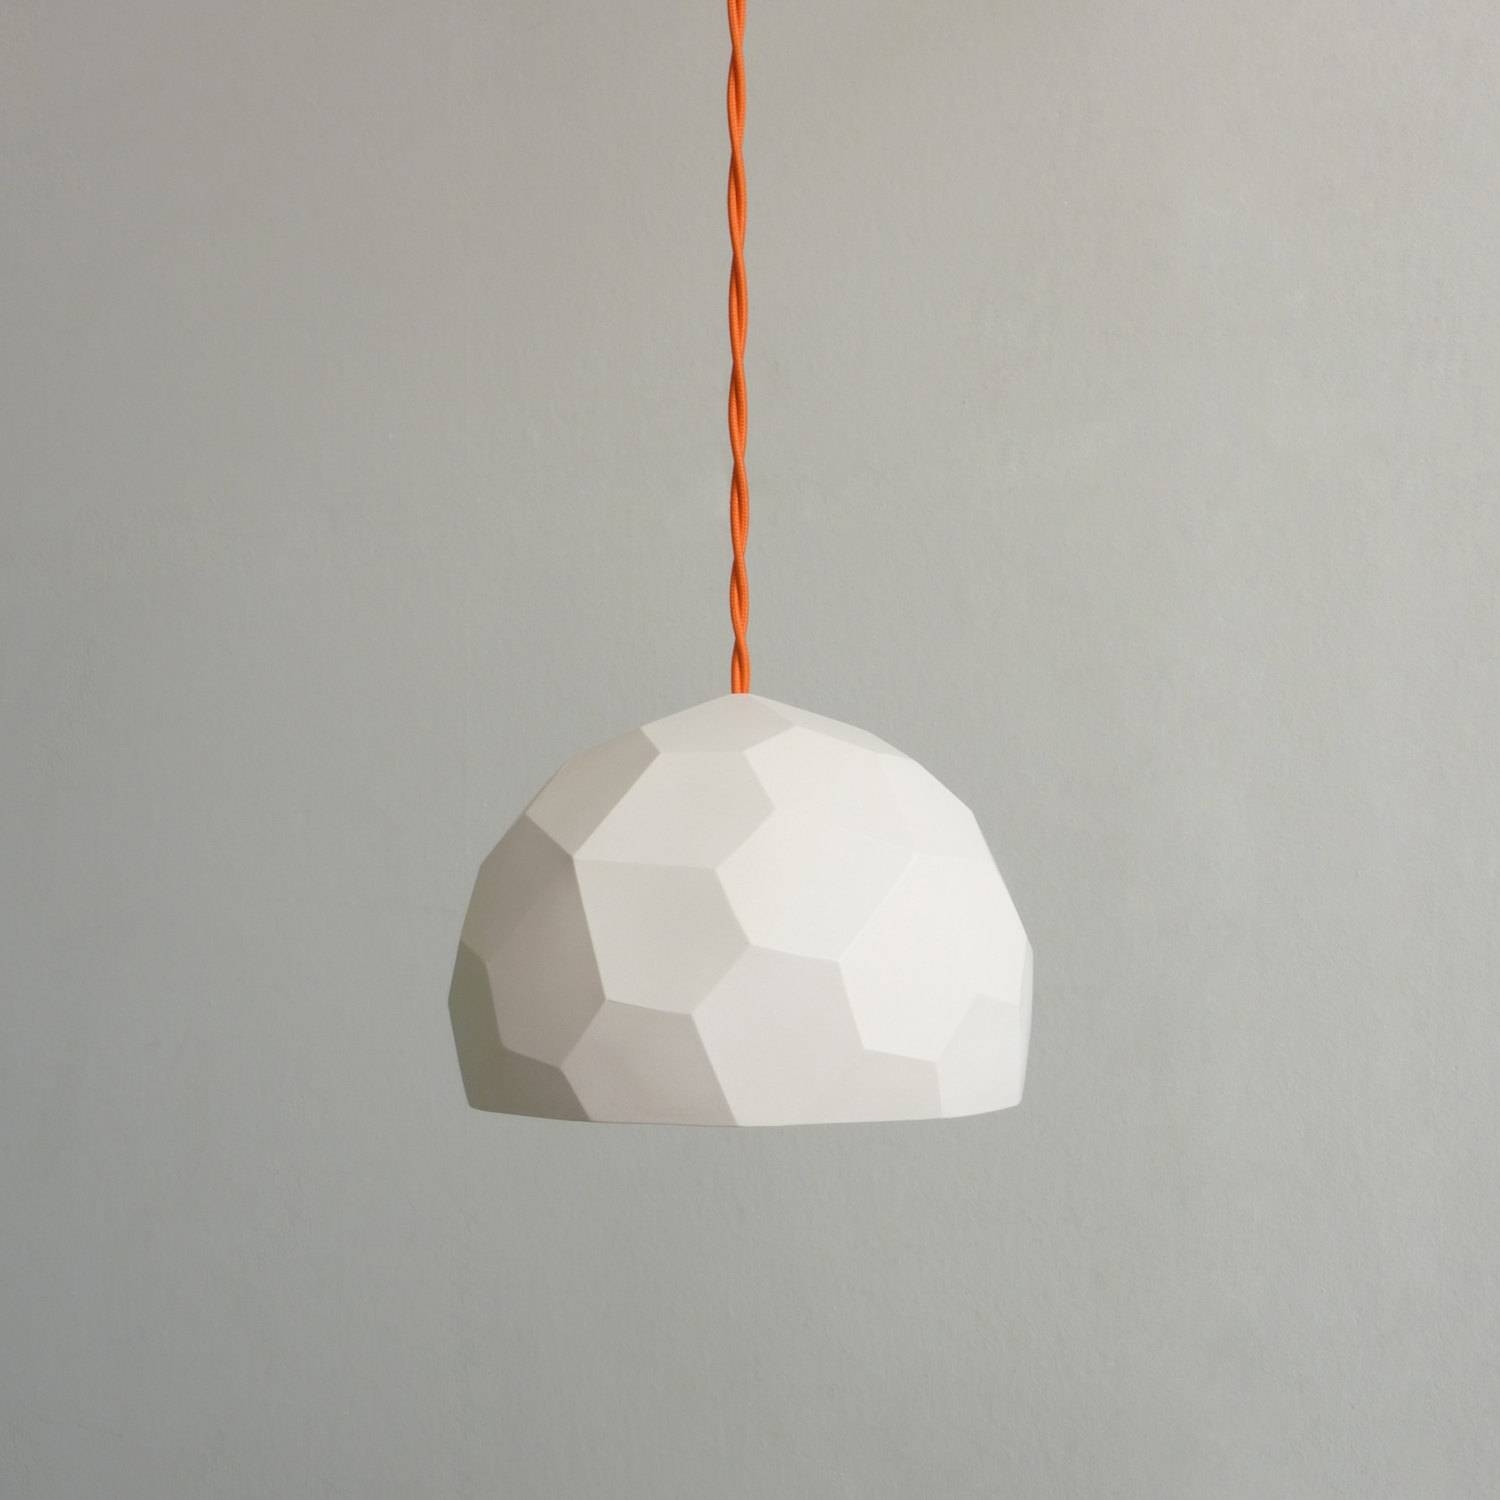 Ceiling Lighting: Plug In Ceiling Light Lamp Lighting Images Wall with regard to Plugin Pendant Lights (Image 1 of 15)